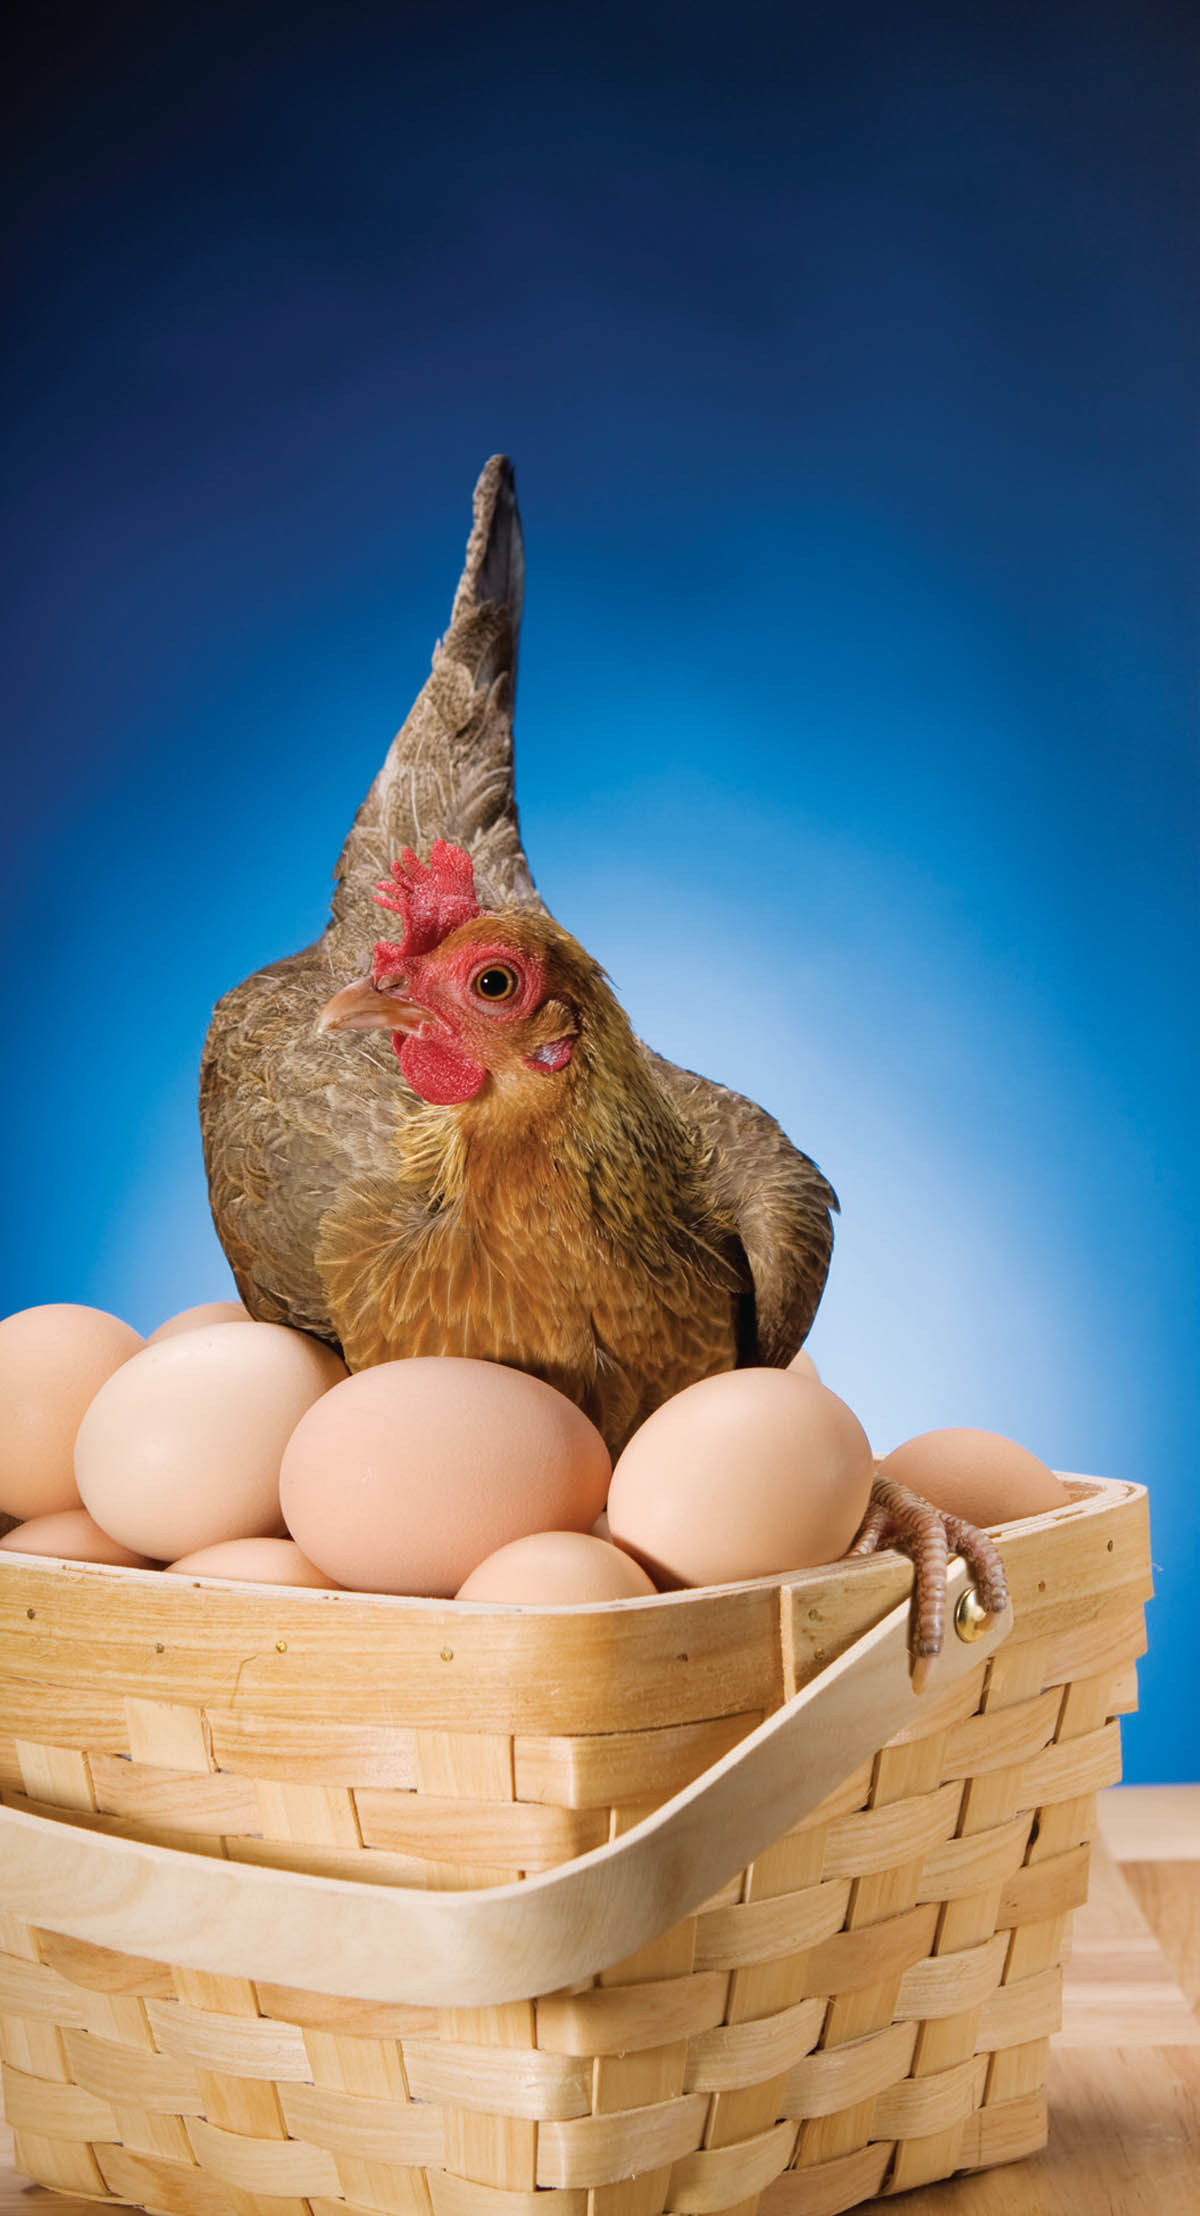 We Try To Put All the Poultry Clichés and Idioms in One Basket